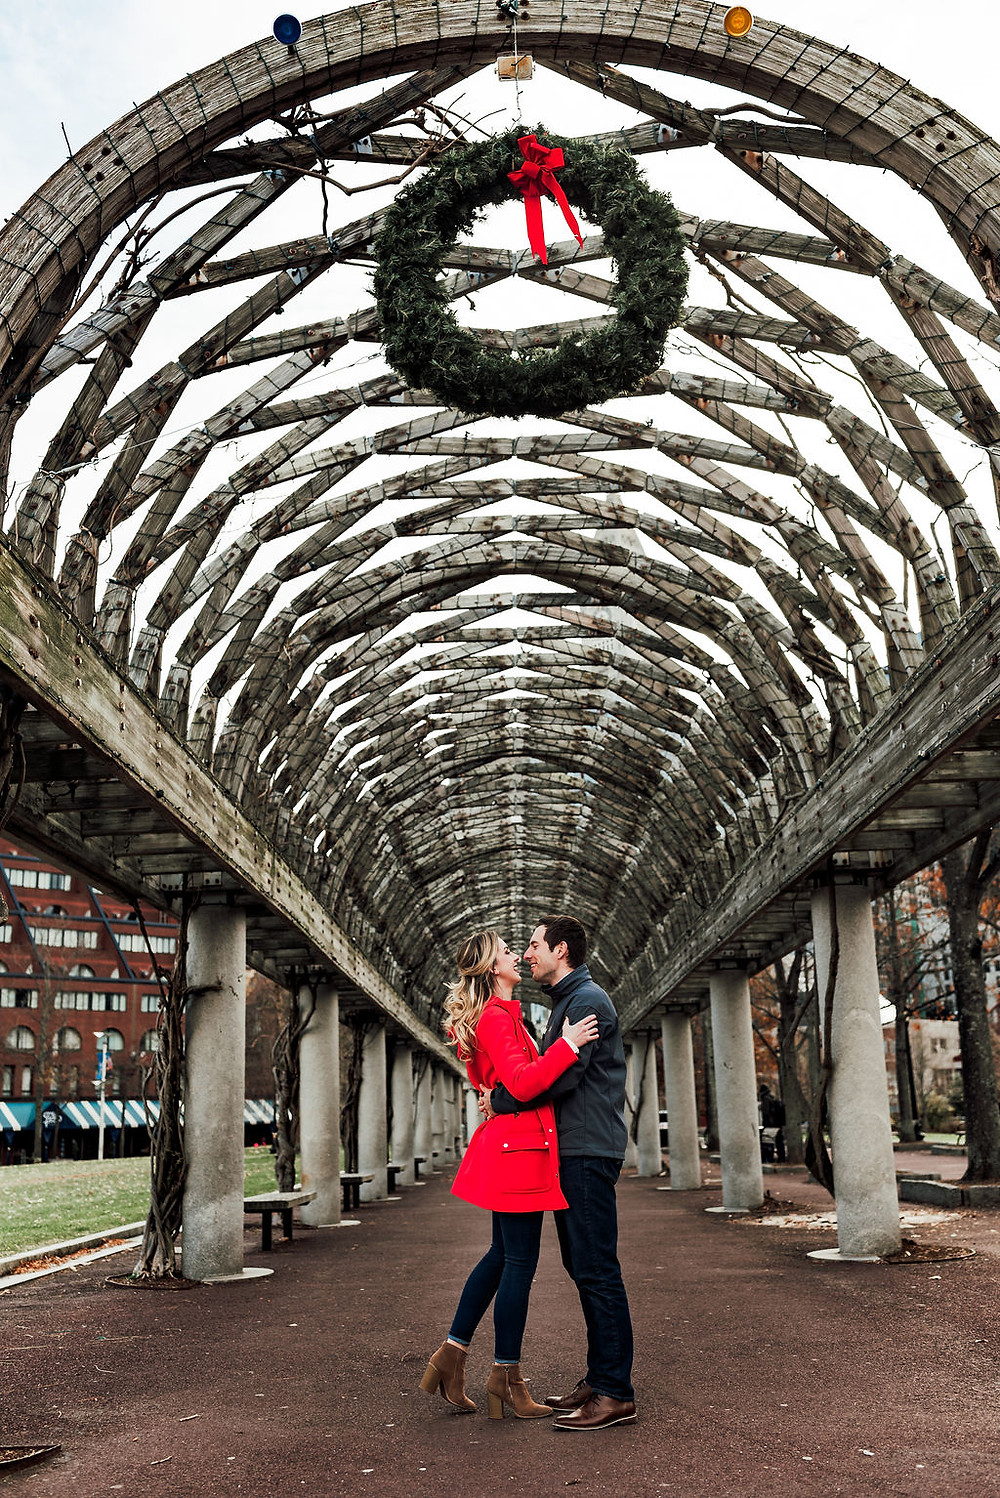 engagement session at christopher columbus park in boston. Coouple is standing under the trellis kissing during a Christmastime. A wreath hangs on the trellis.